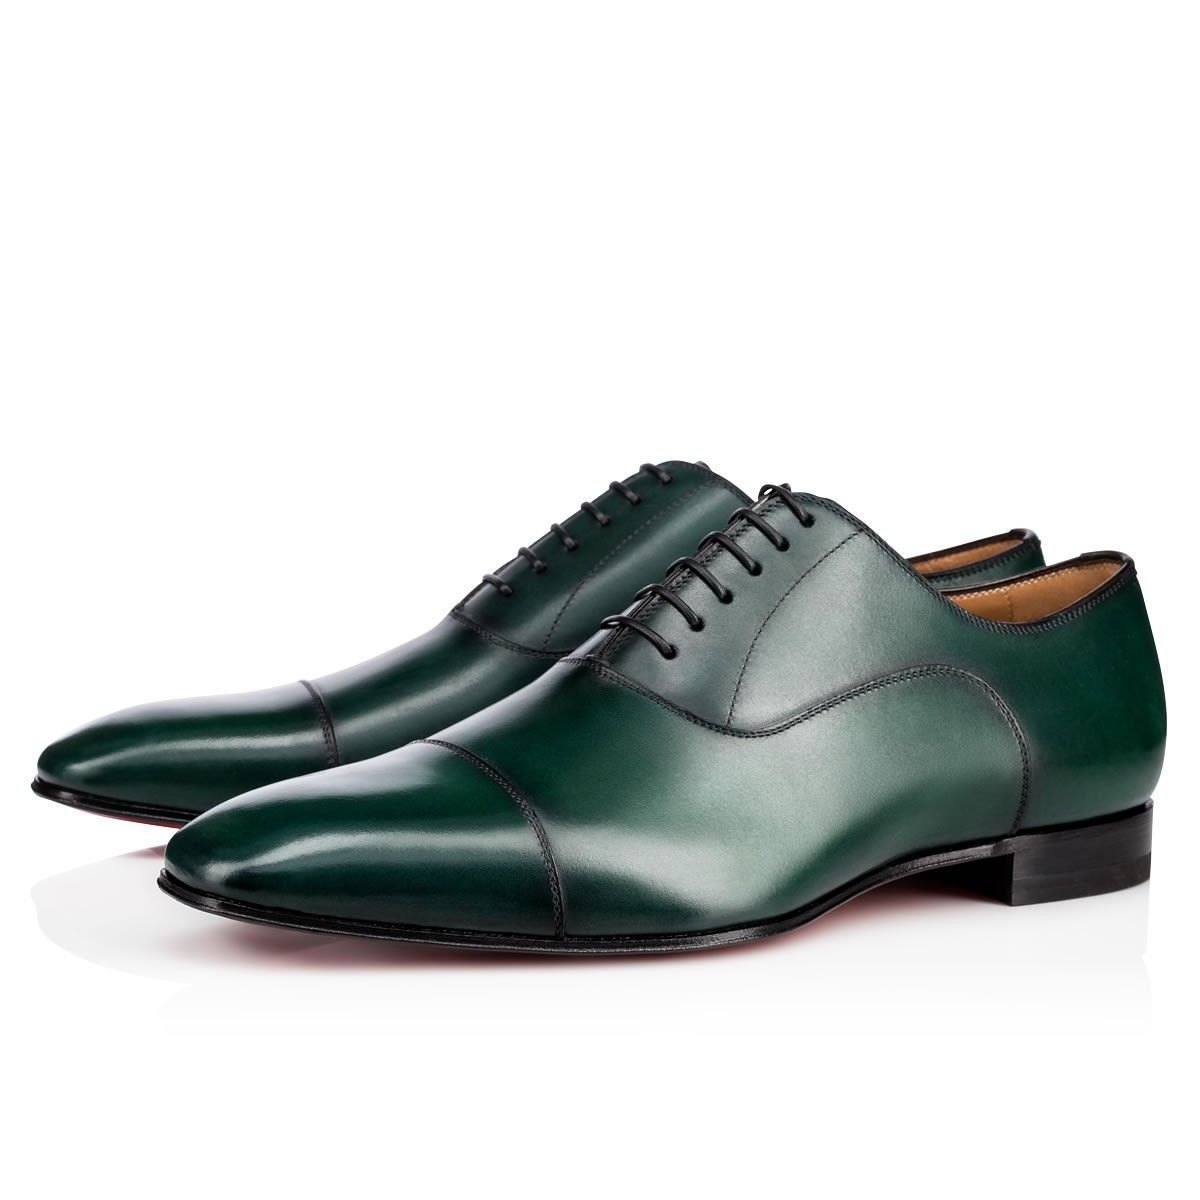 Greggo Flat Green Leather - Men Shoes - Christian Louboutin